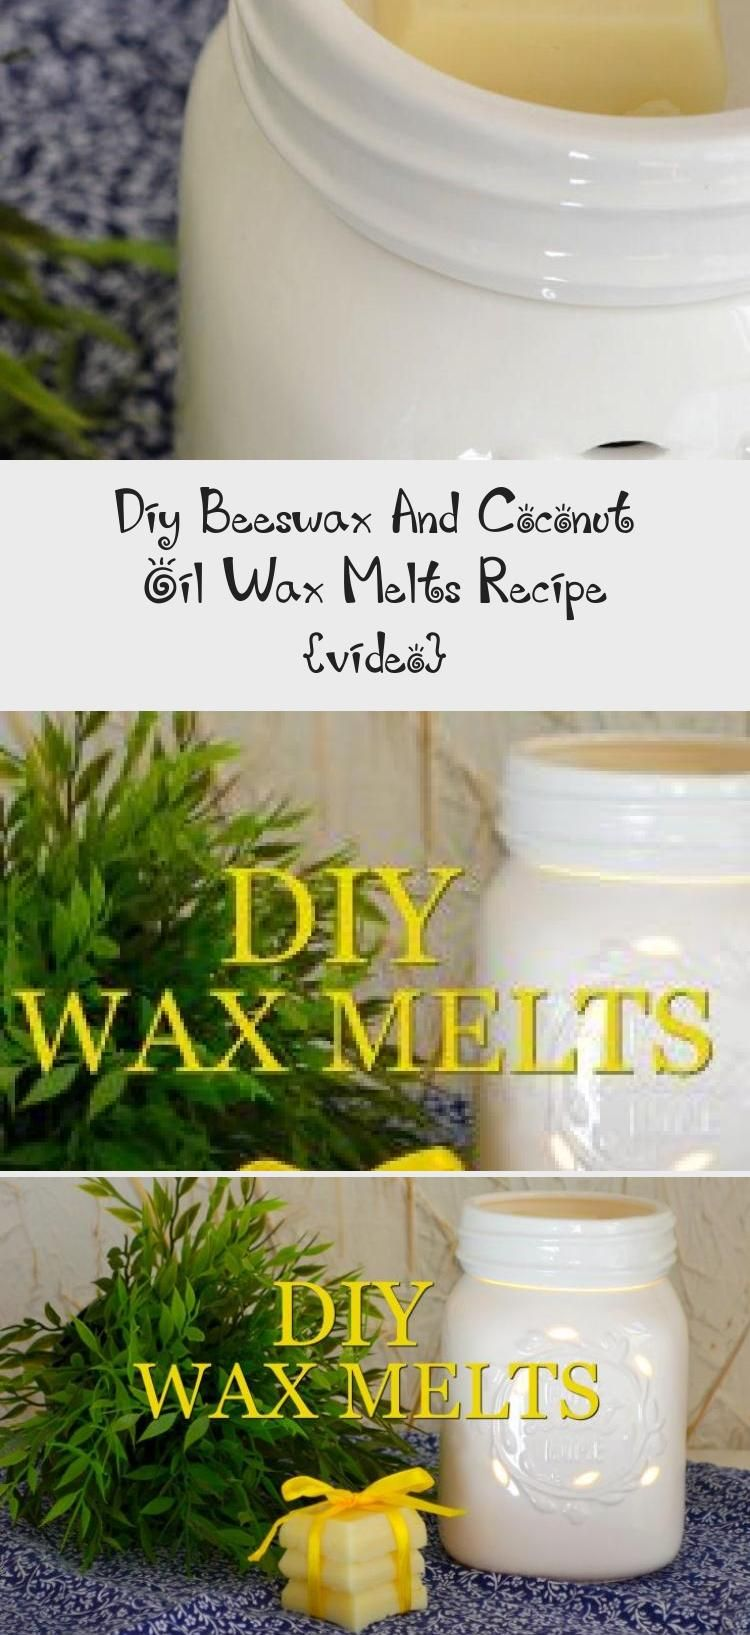 DIY Homemade Beeswax and Coconut Oil Wax Melts Recipe